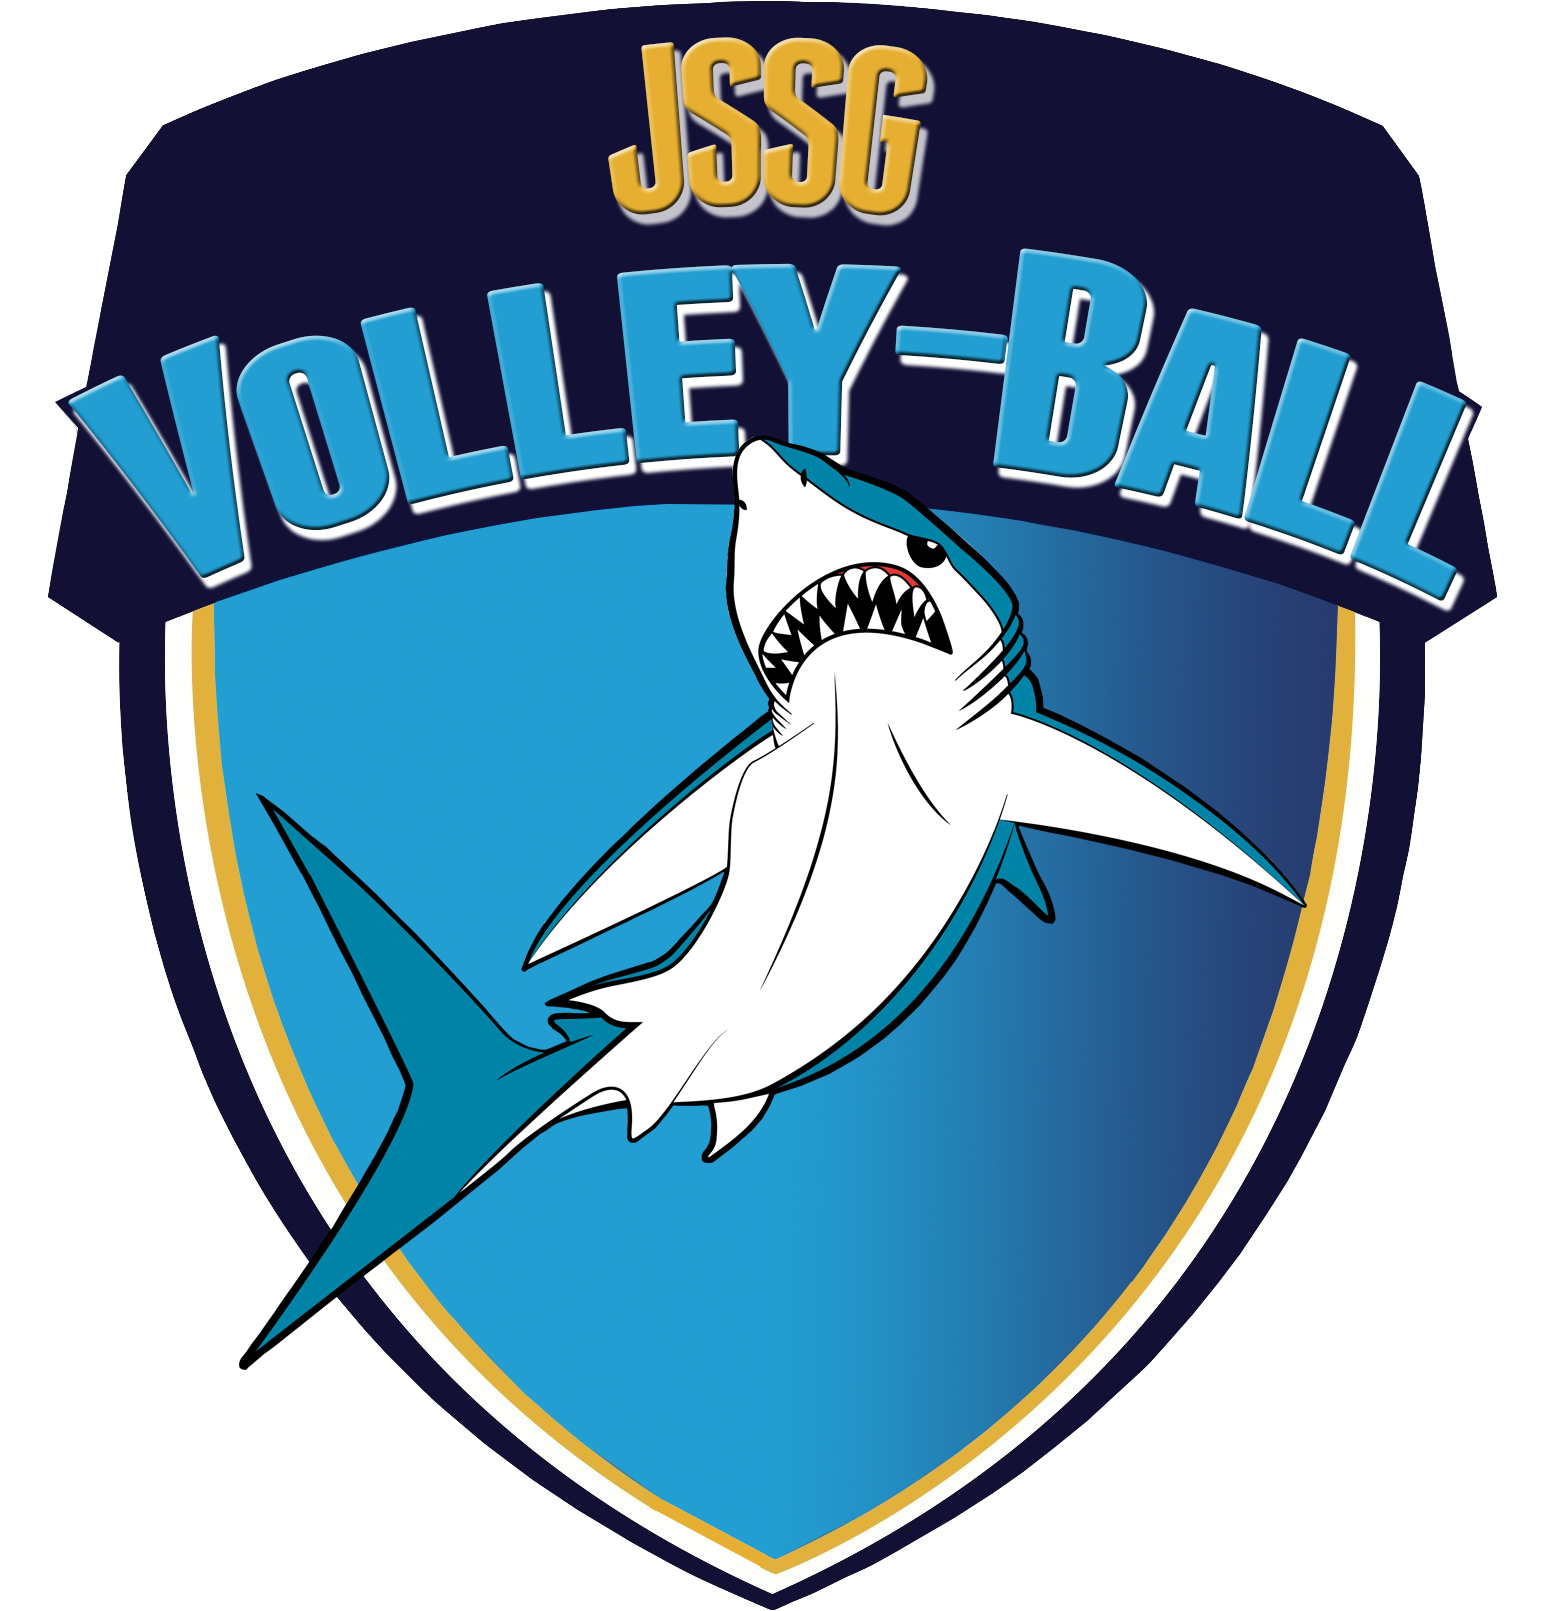 JSSG VOLLEY BALL